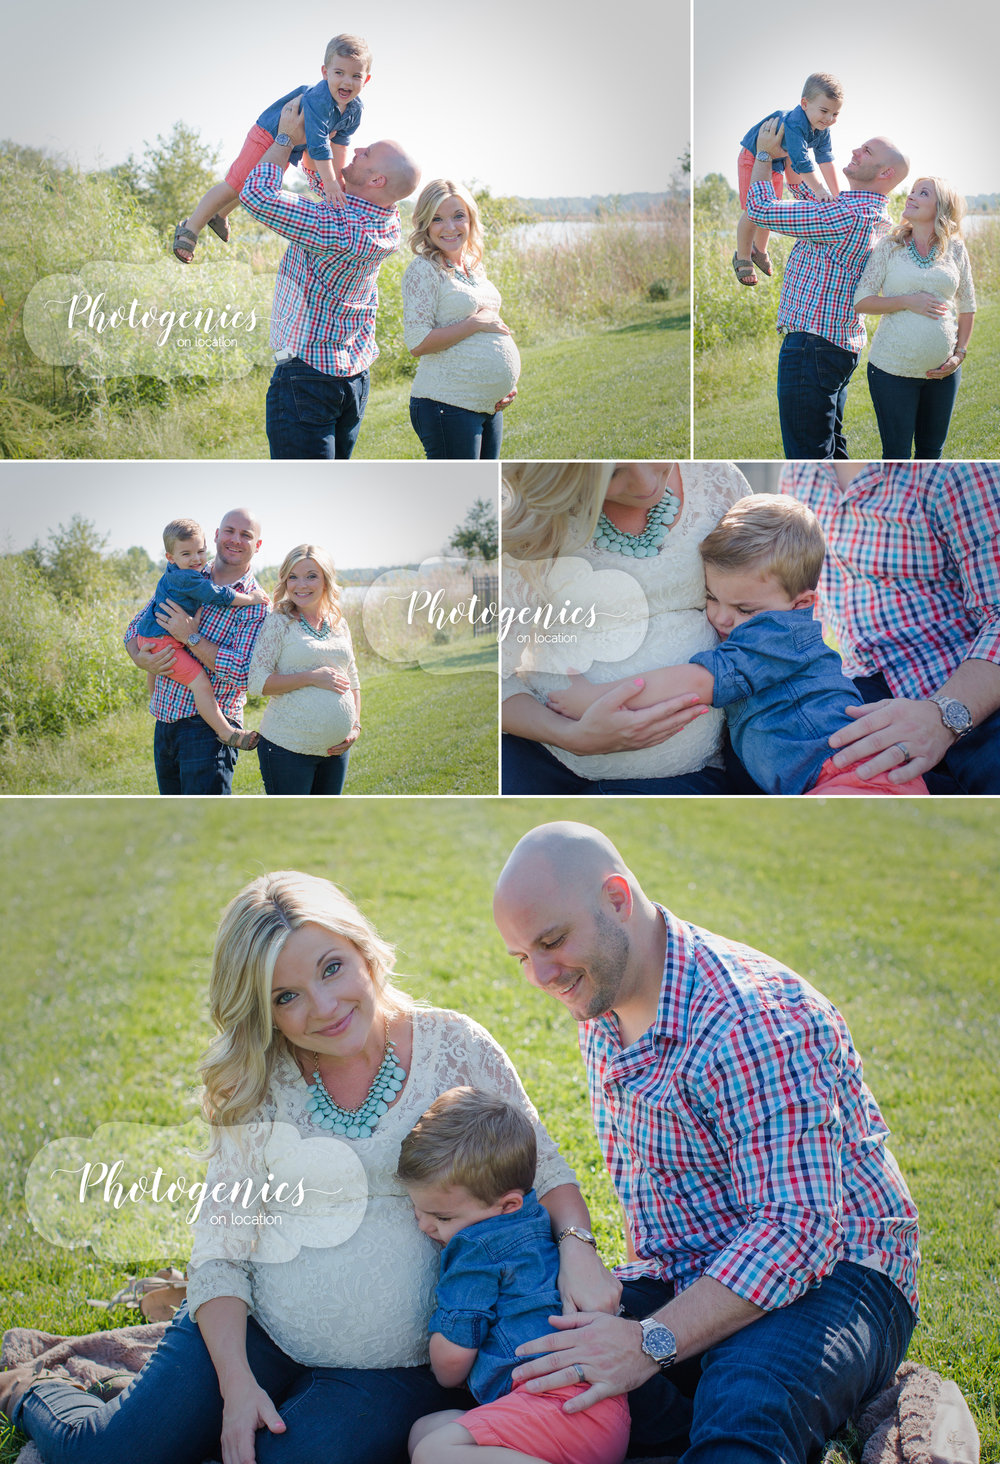 maternity_session_home_photography_family_sibling_toddler 3.jpg